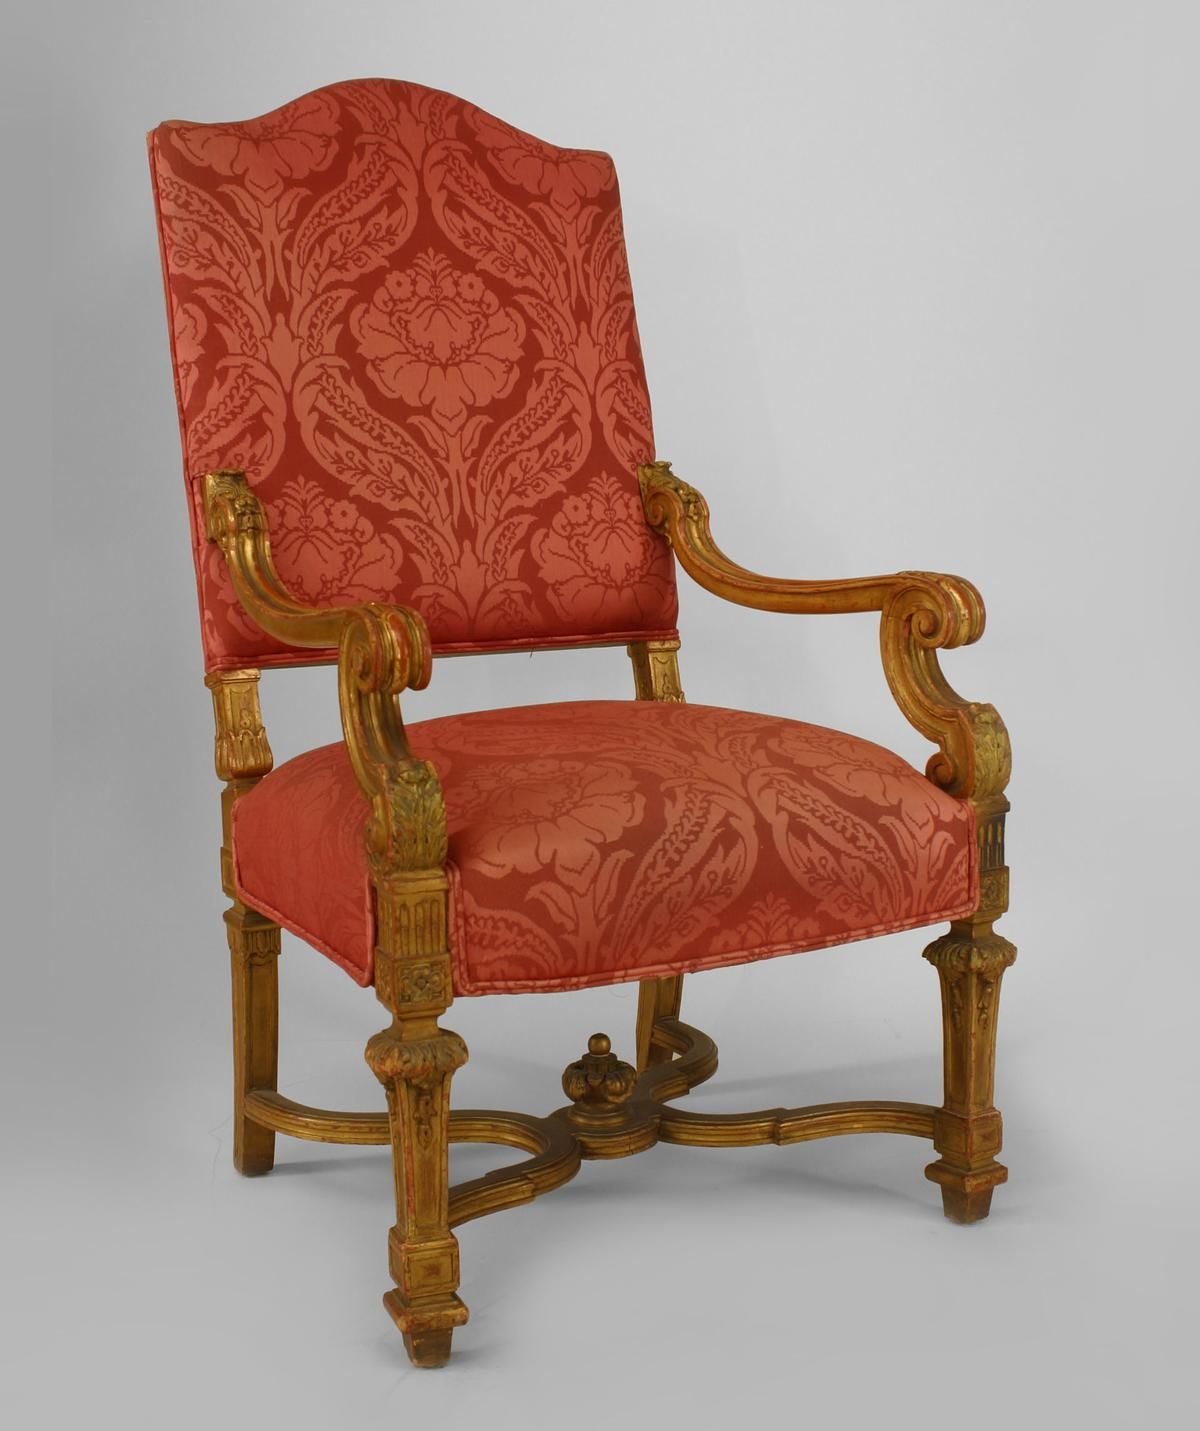 Antique louis xiv chair - French Louis Xiv Seating Chair Set Gilt